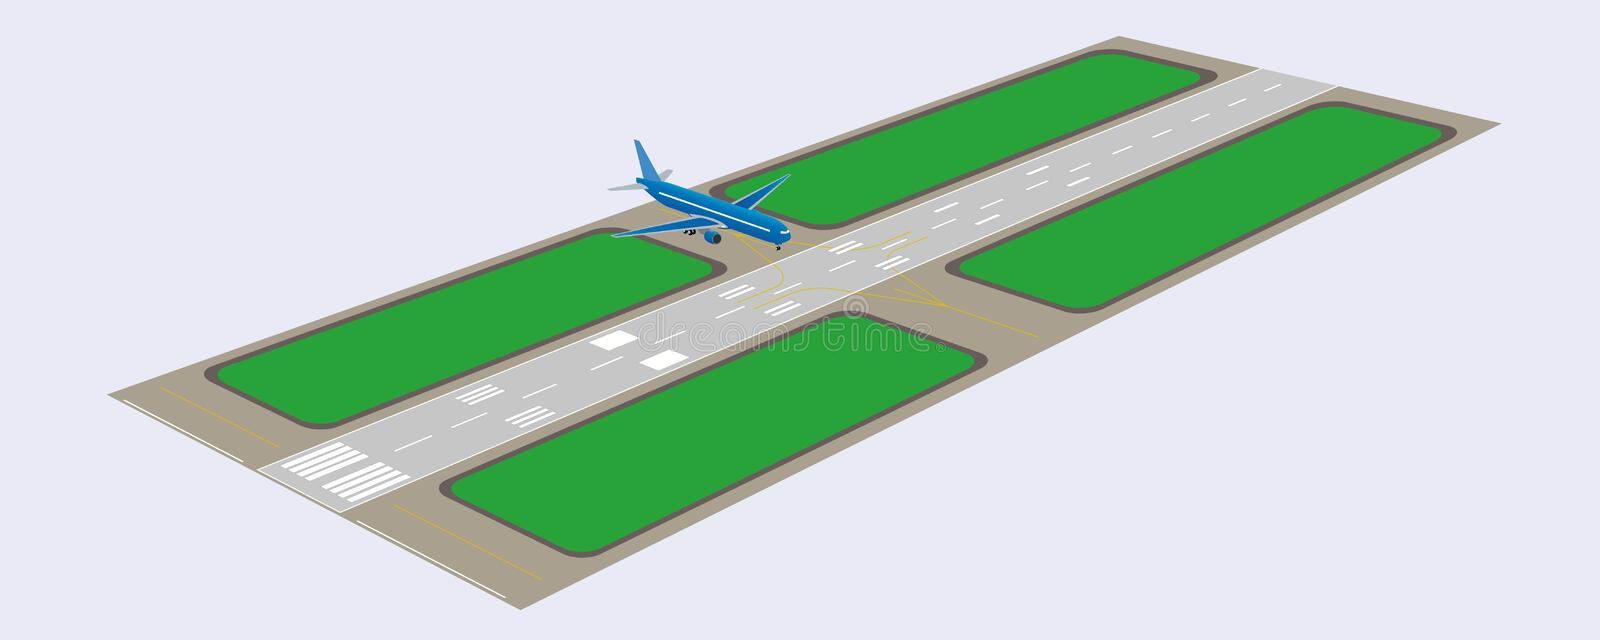 Airport runway. Perspective view. Vector illustration. Eps 10 royalty free illustration